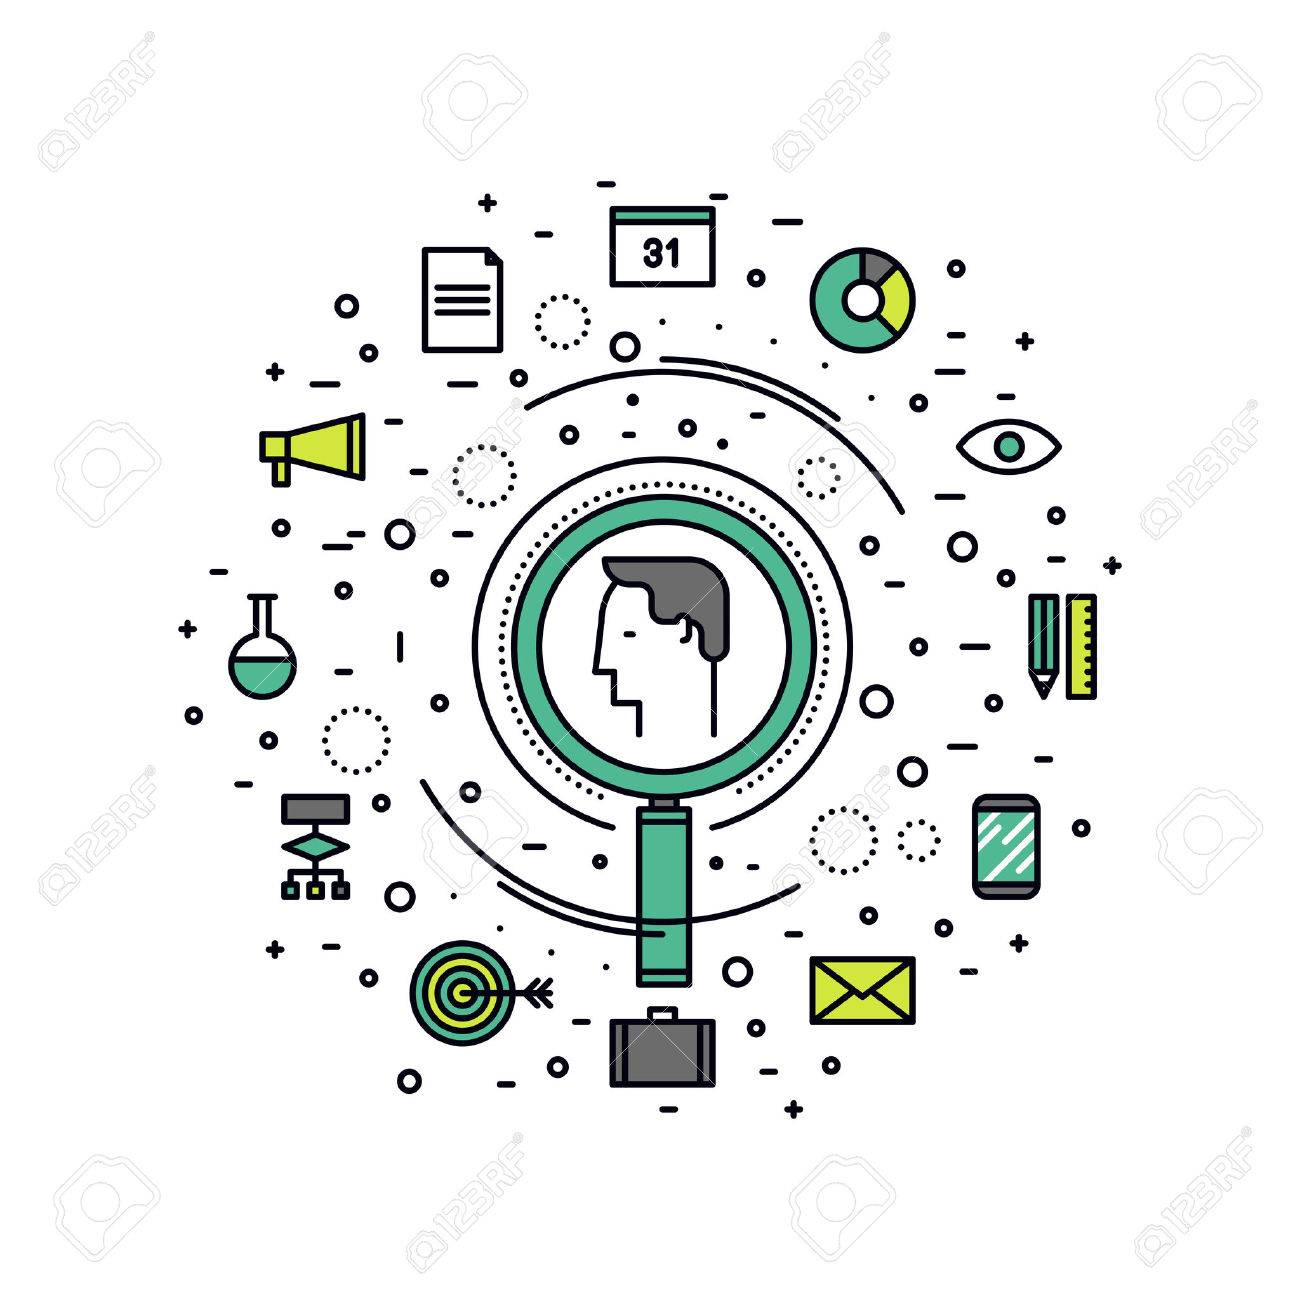 Thin line flat design of professional headhunting of business people, human resource search for best candidate, employment hunting. Modern vector illustration concept, isolated on white background. Stock Vector - 43550569